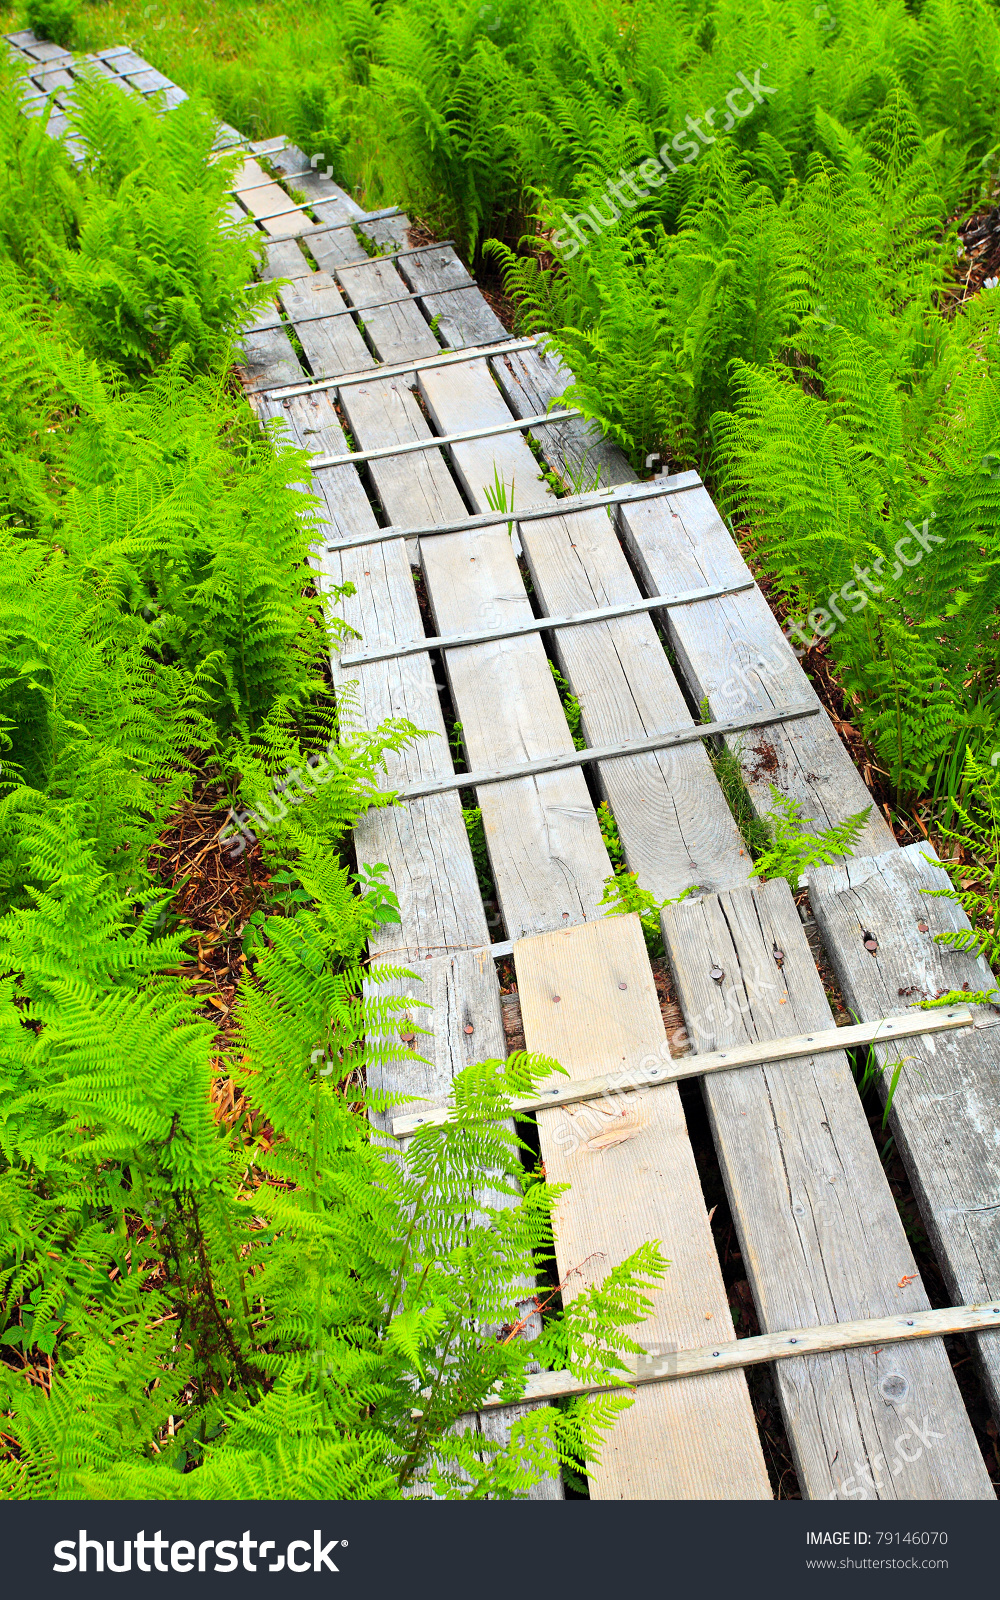 Wooden Sidewalk Over A Peat.